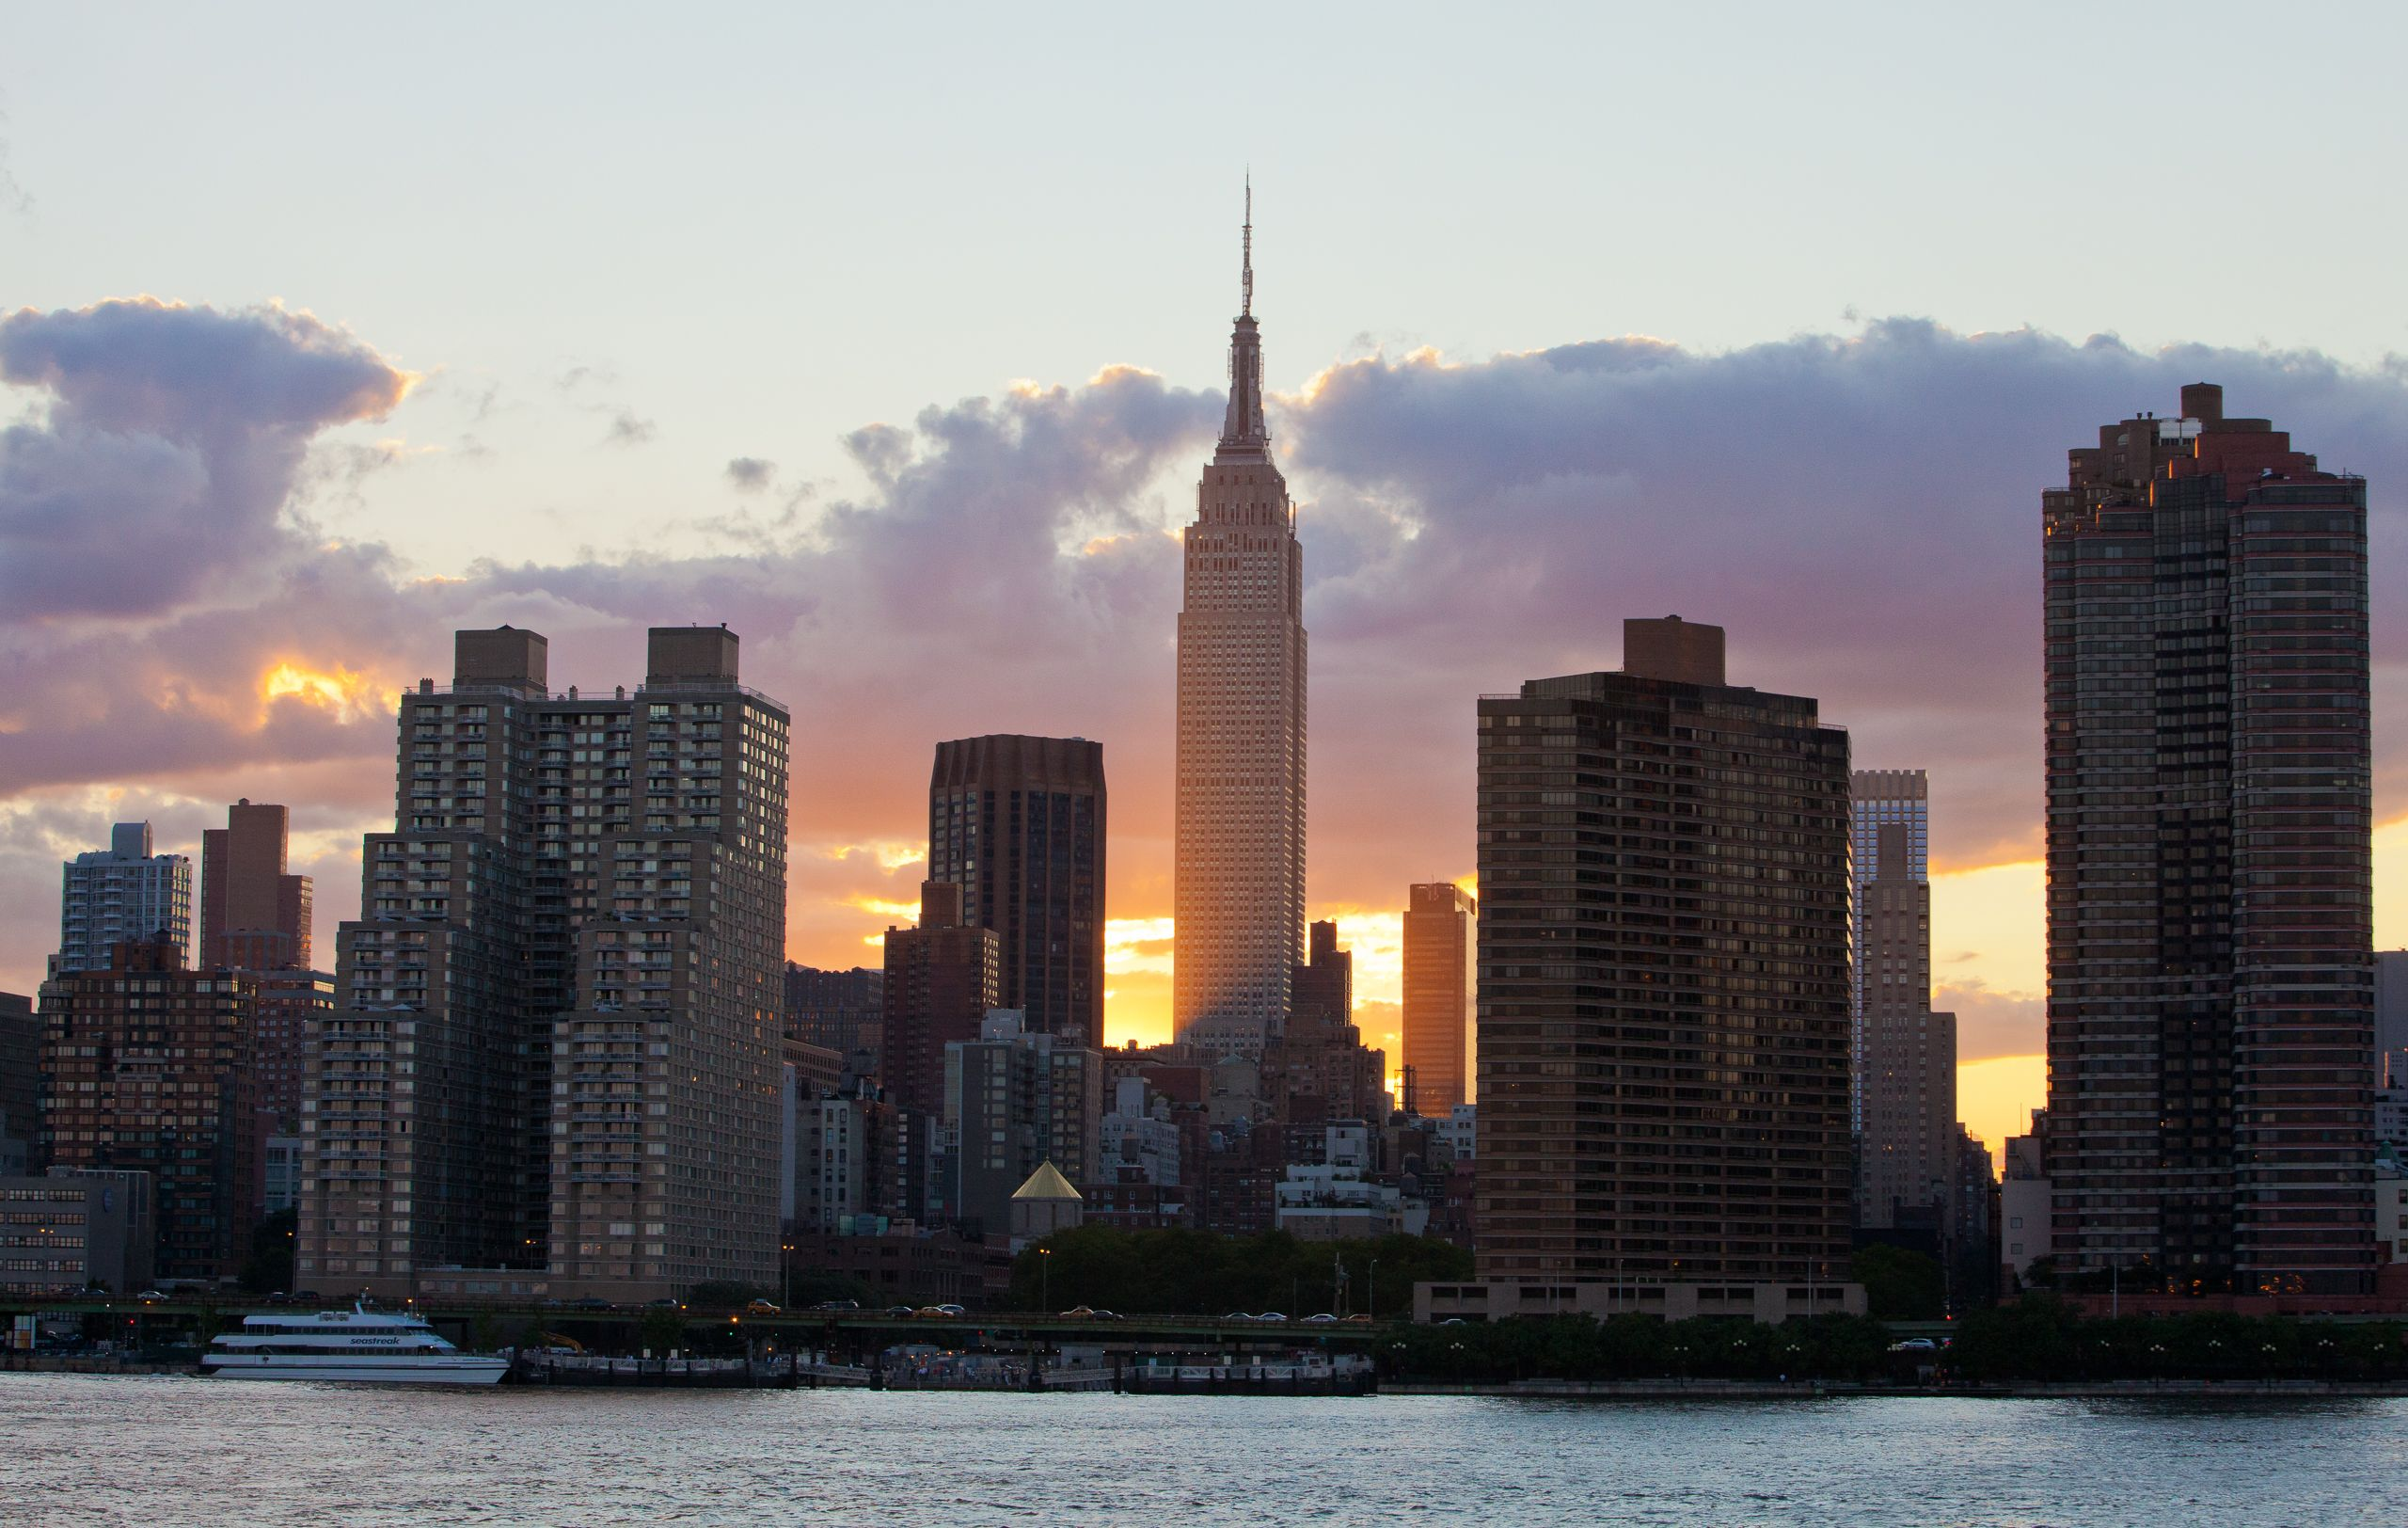 The Empire State Building at sunset from the East River